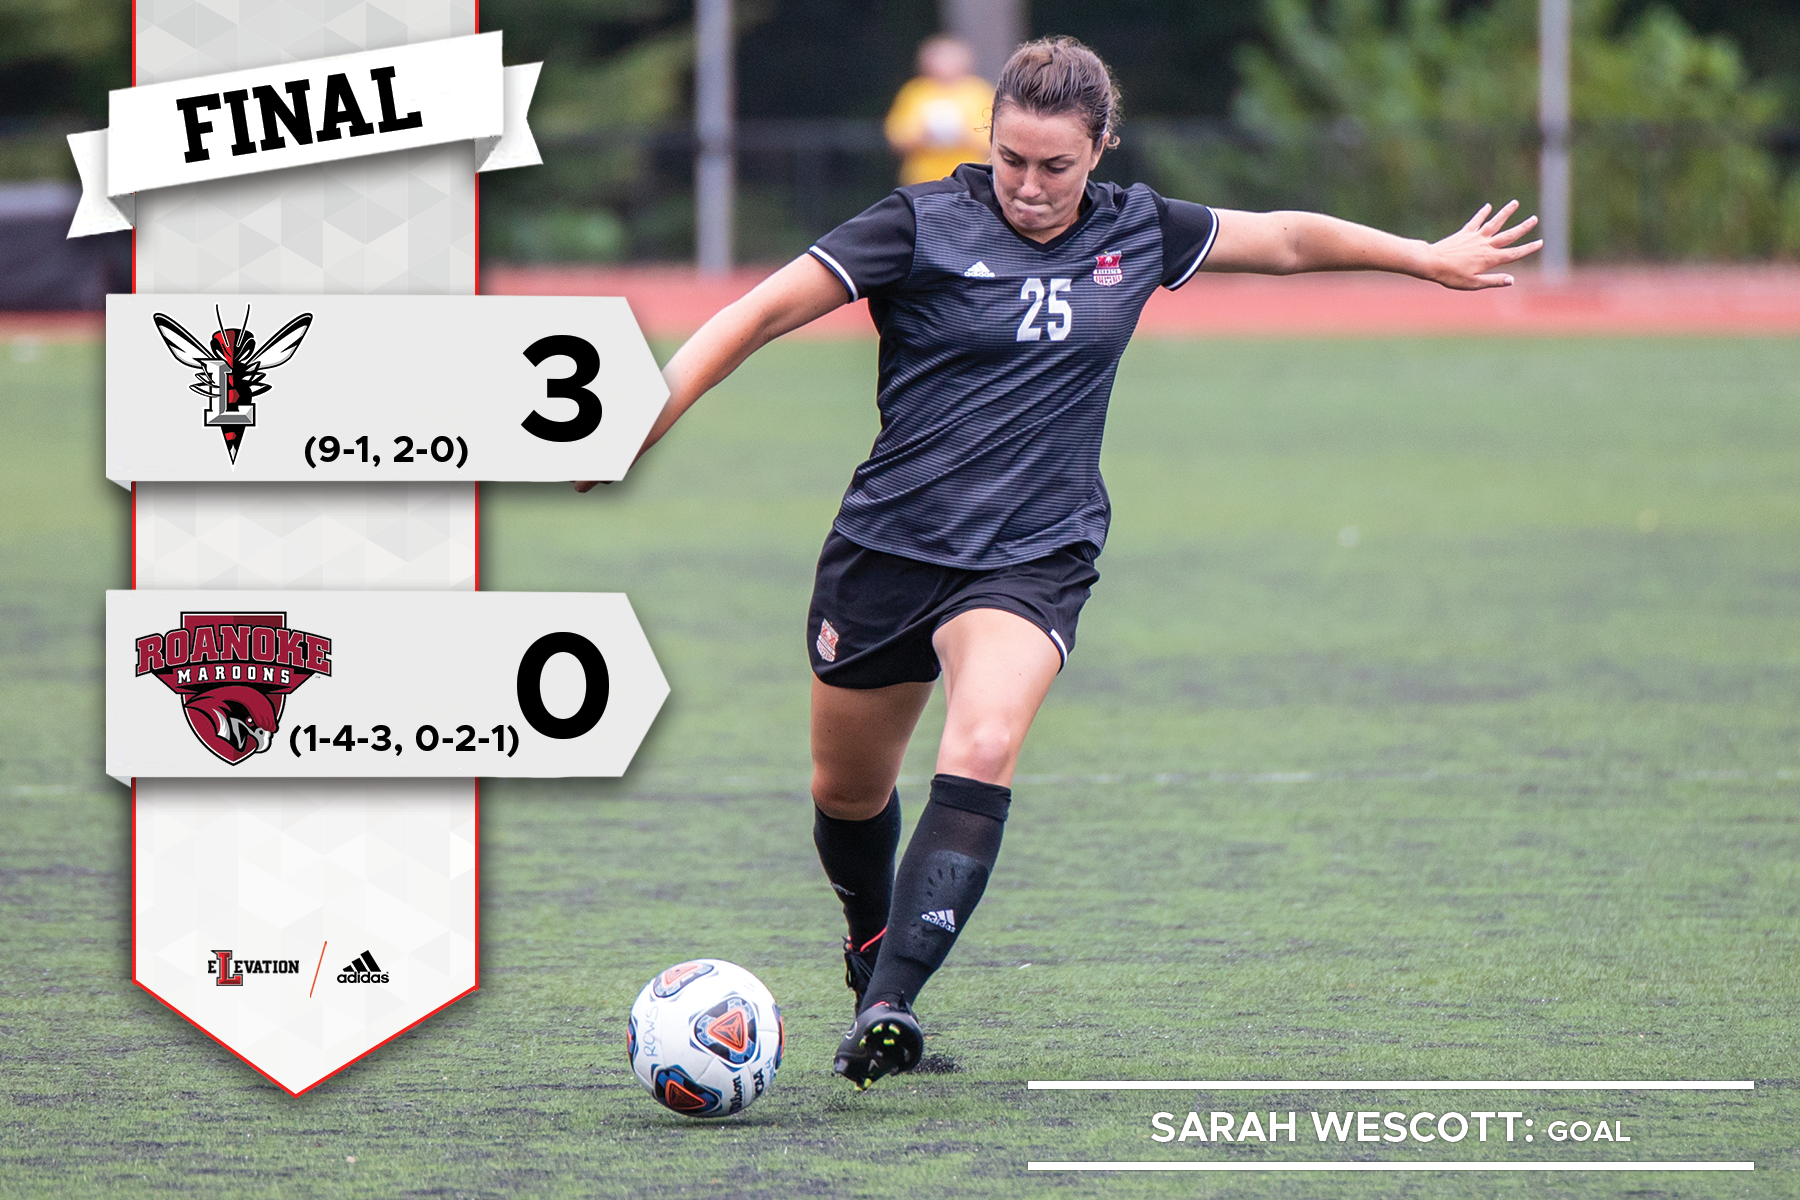 Sarah Wescott kicks a soccer ball. Graphic showing 3-0 final score and Lynchburg and Roanoke logos.